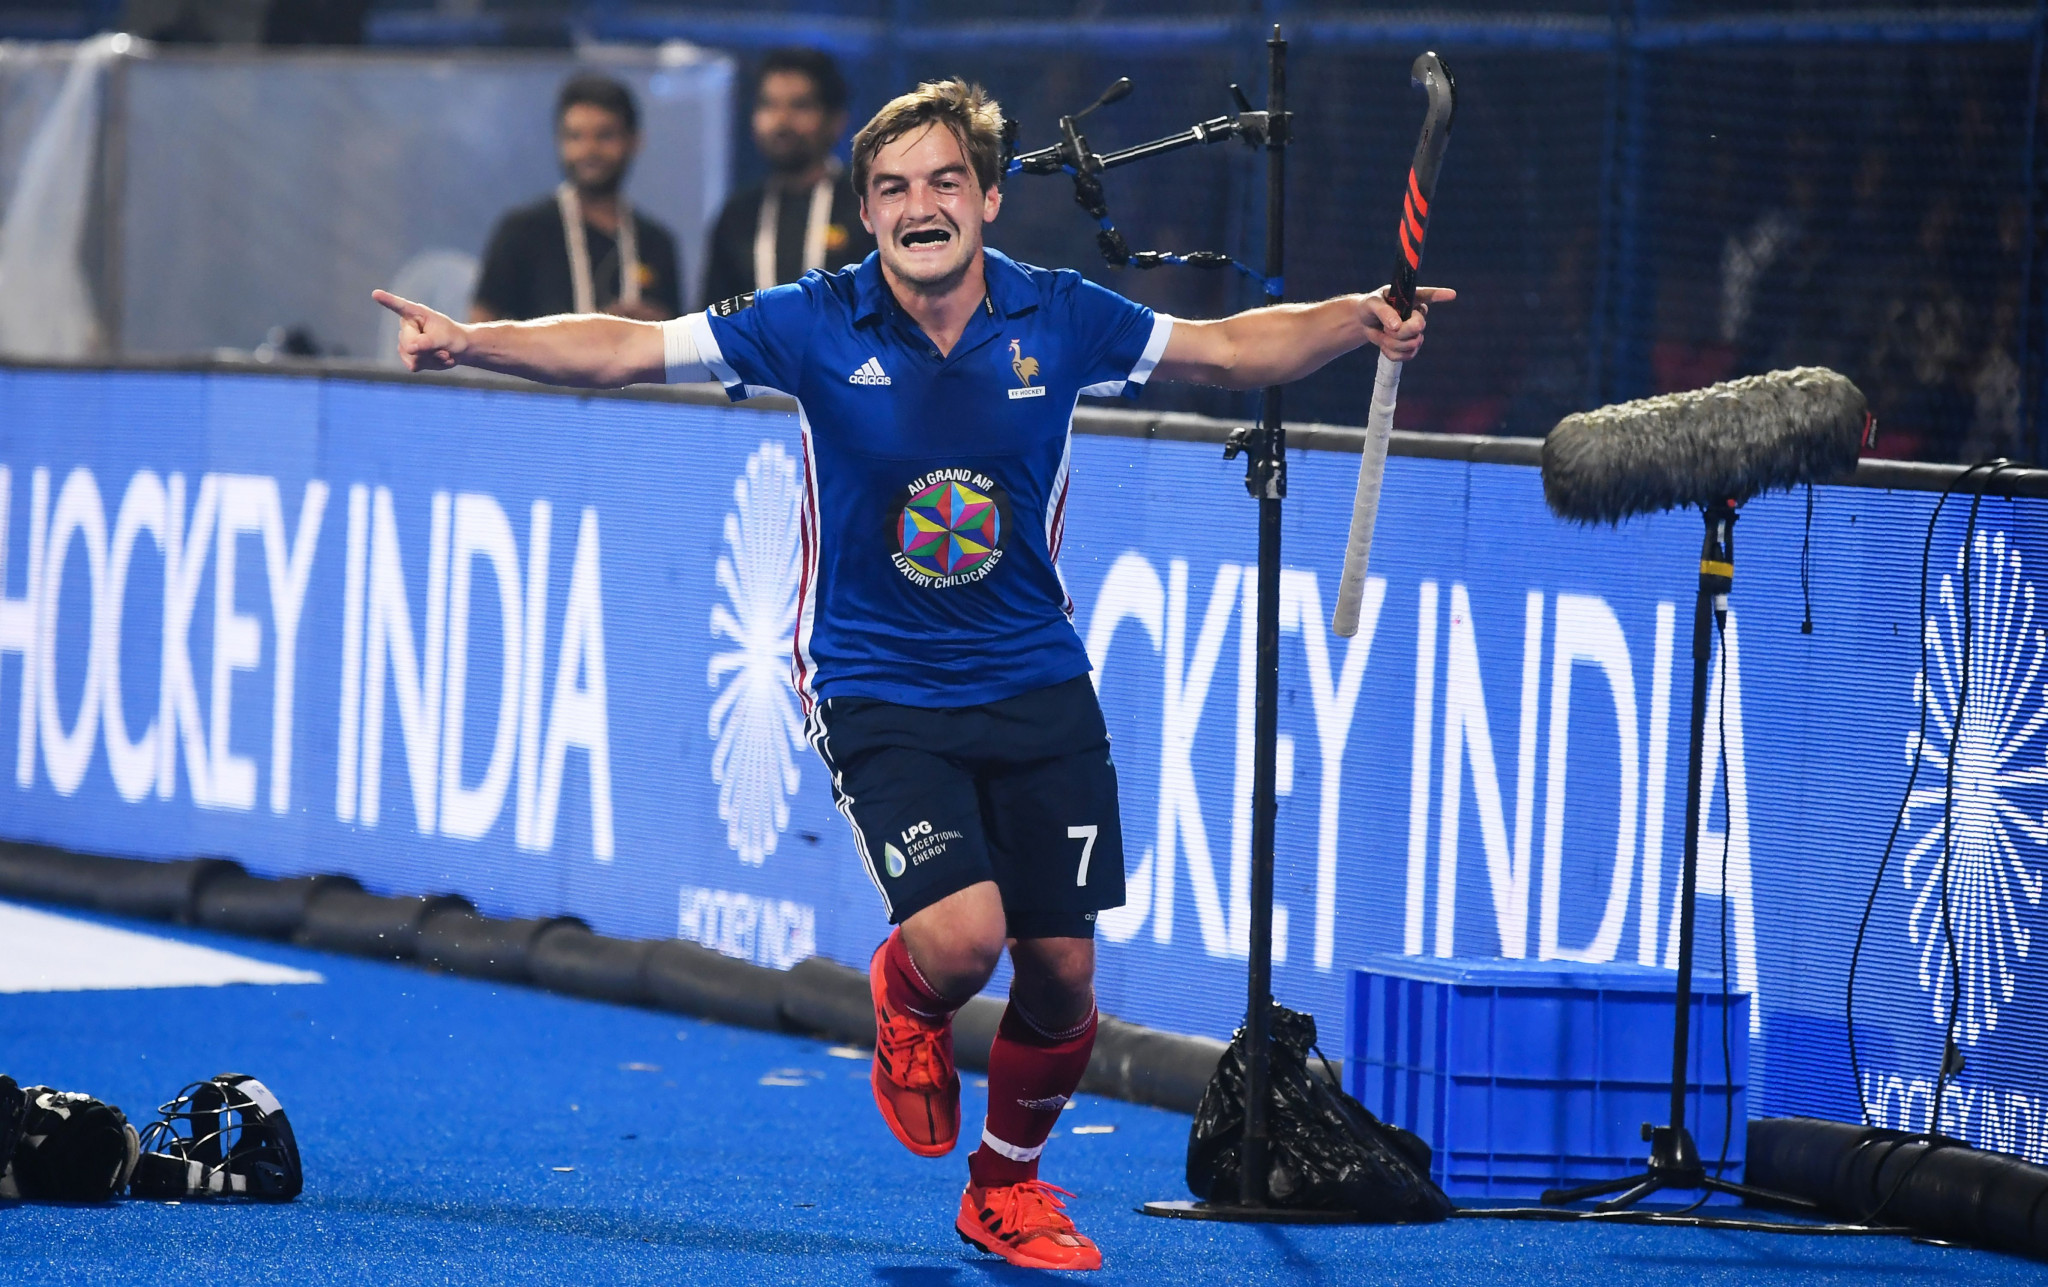 French hockey co-captain Genestet retires after positive cocaine test